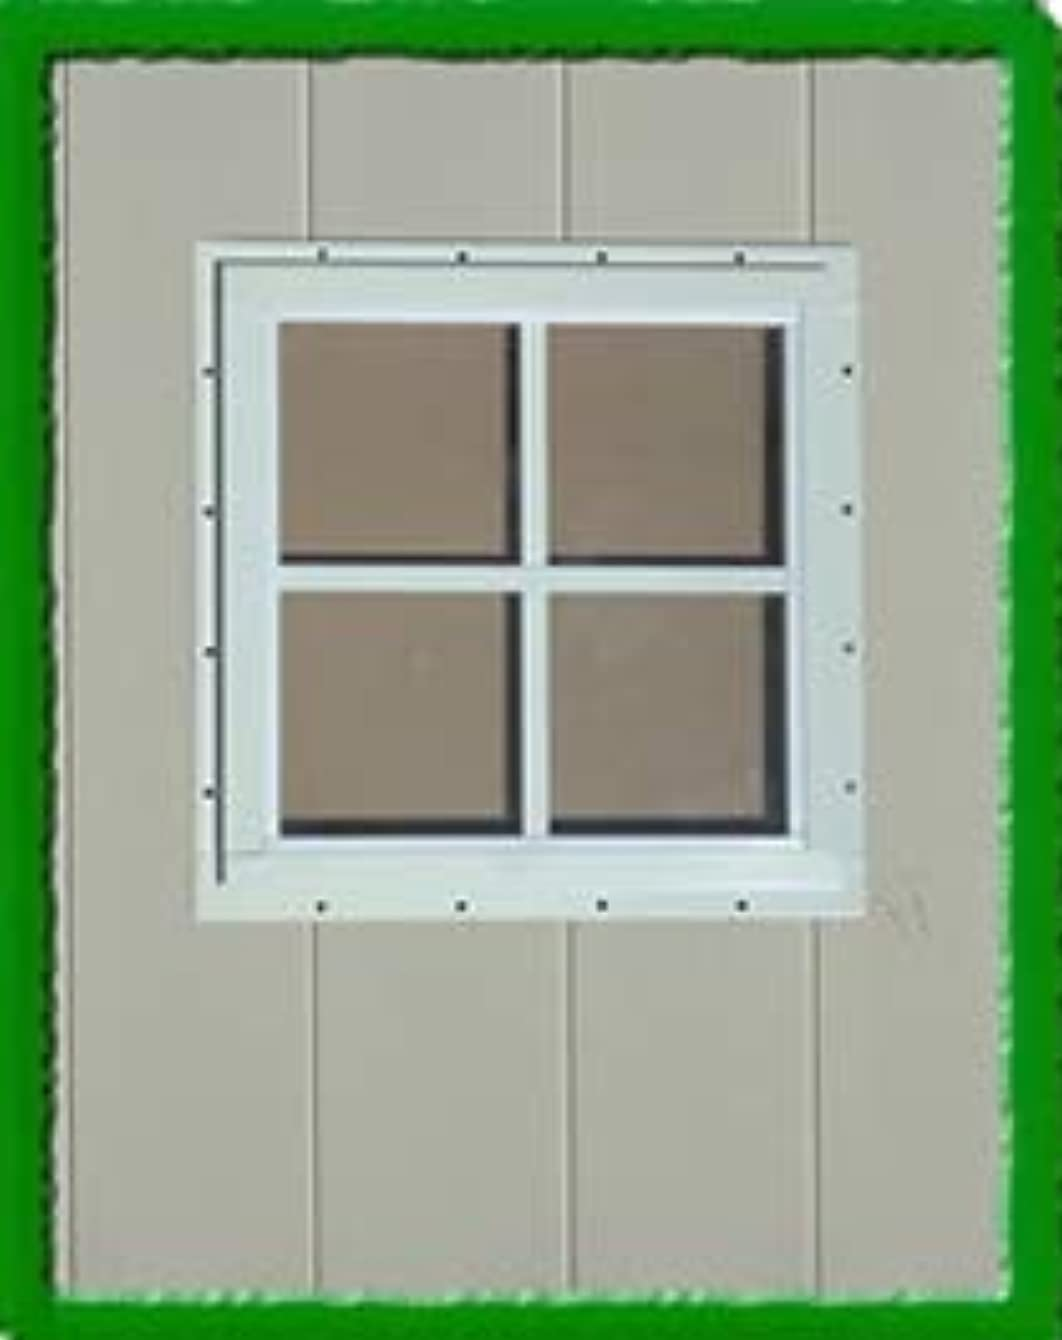 OUTDOOR PLAY AND STORAGE Square SHED WINDOW-12X12-BROWN-J-LAP